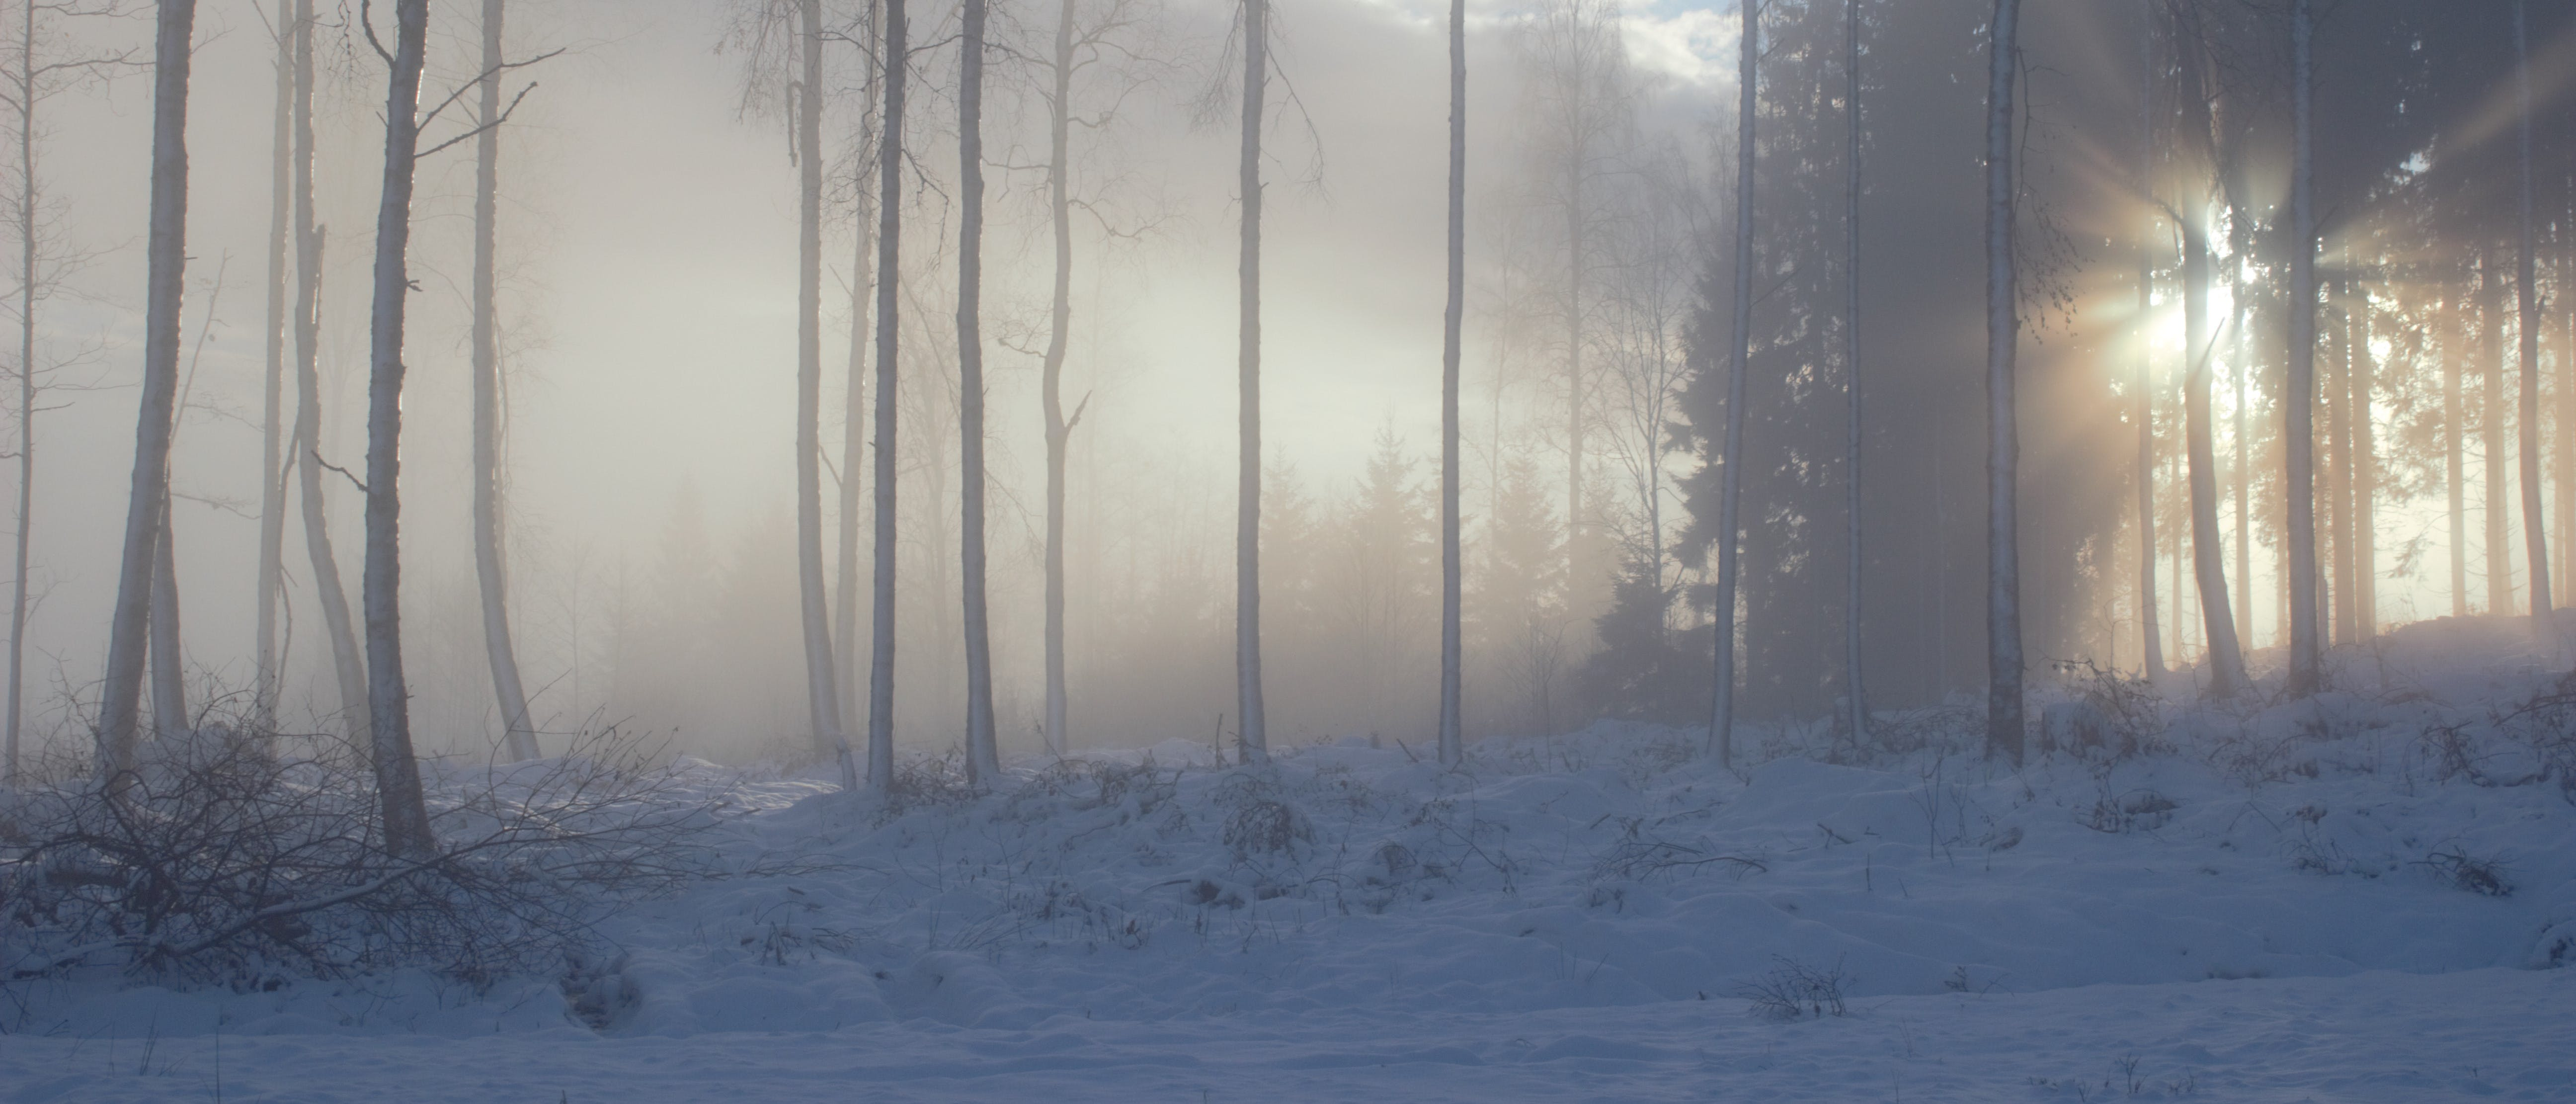 Free stock photo of forest, trees, winter